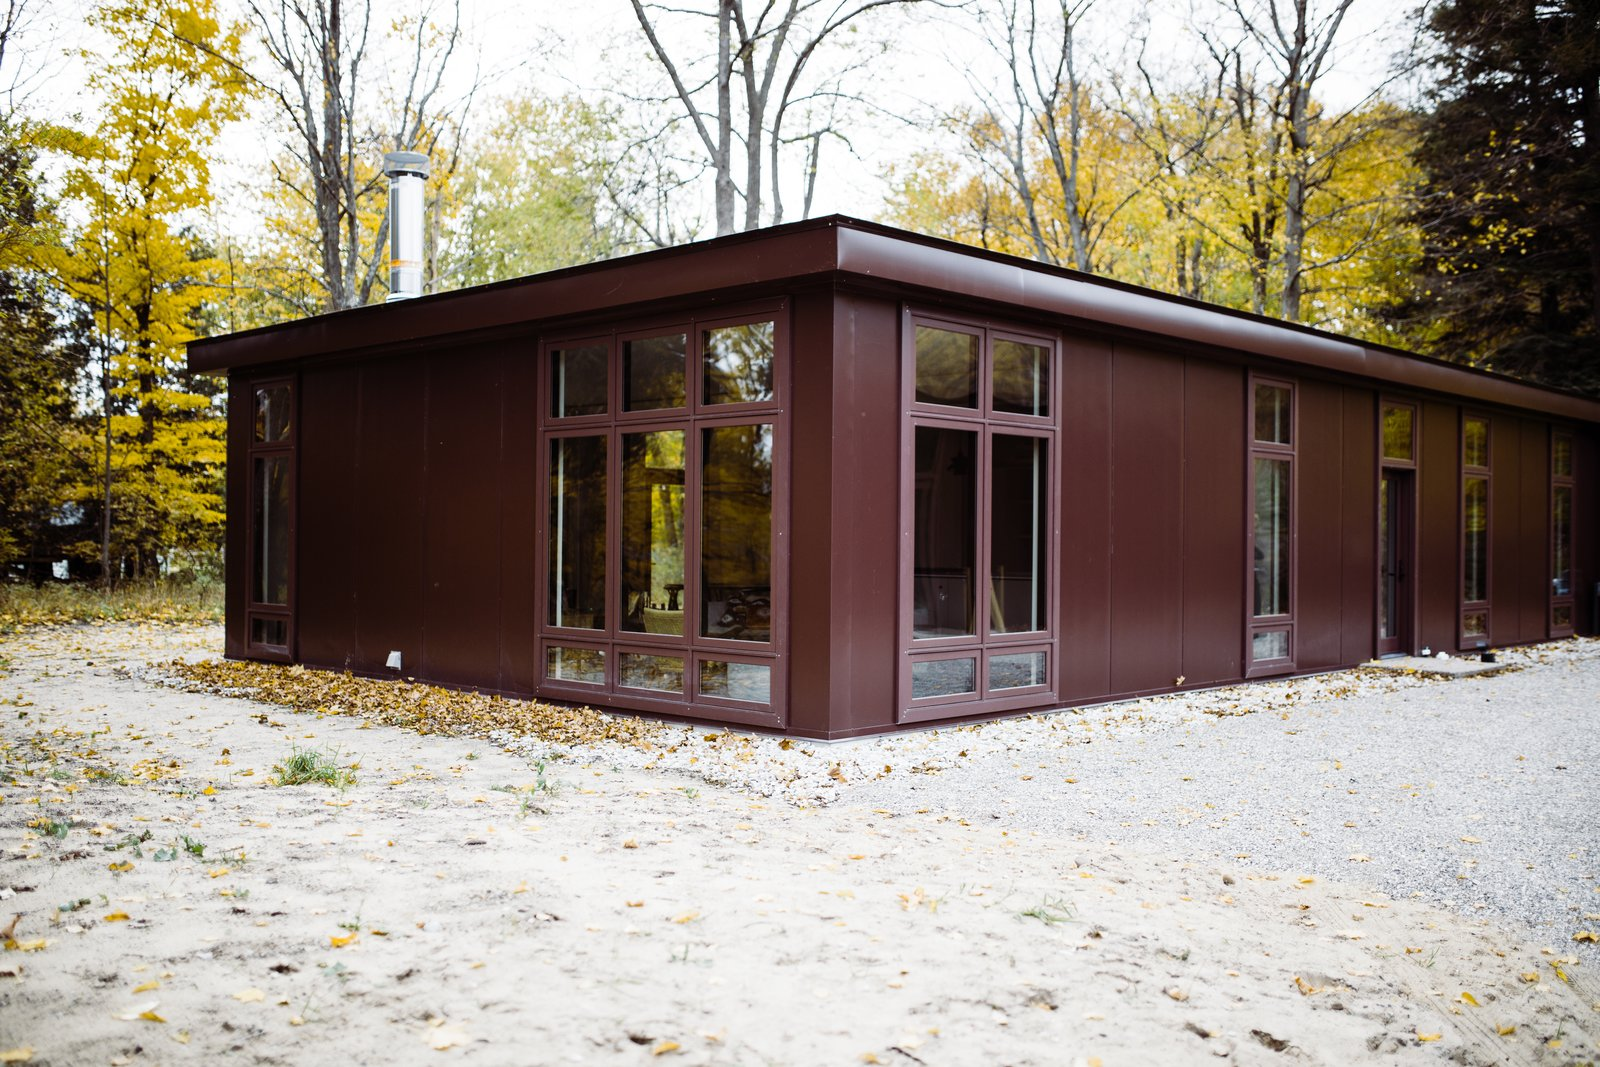 Exterior, House Building Type, Metal Siding Material, and Flat RoofLine Floor-to-ceiling windows line the walls of the structure.  North Shore #7 by Hygge Supply